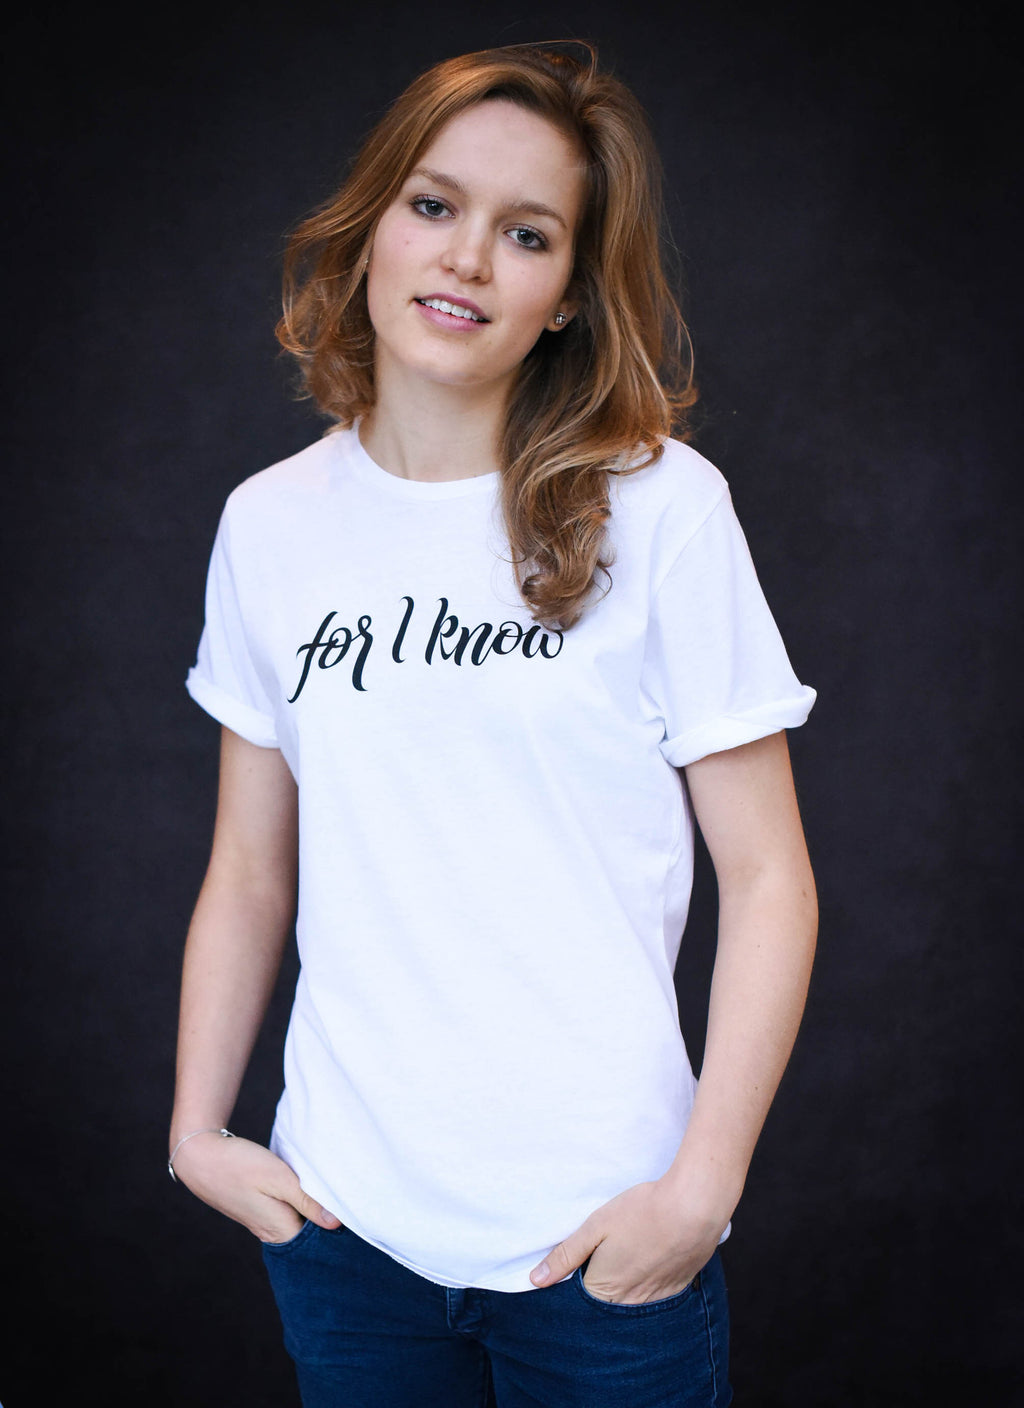 For I Know - Ethical Organic Cotton Rolled Sleeve Women's T-Shirt